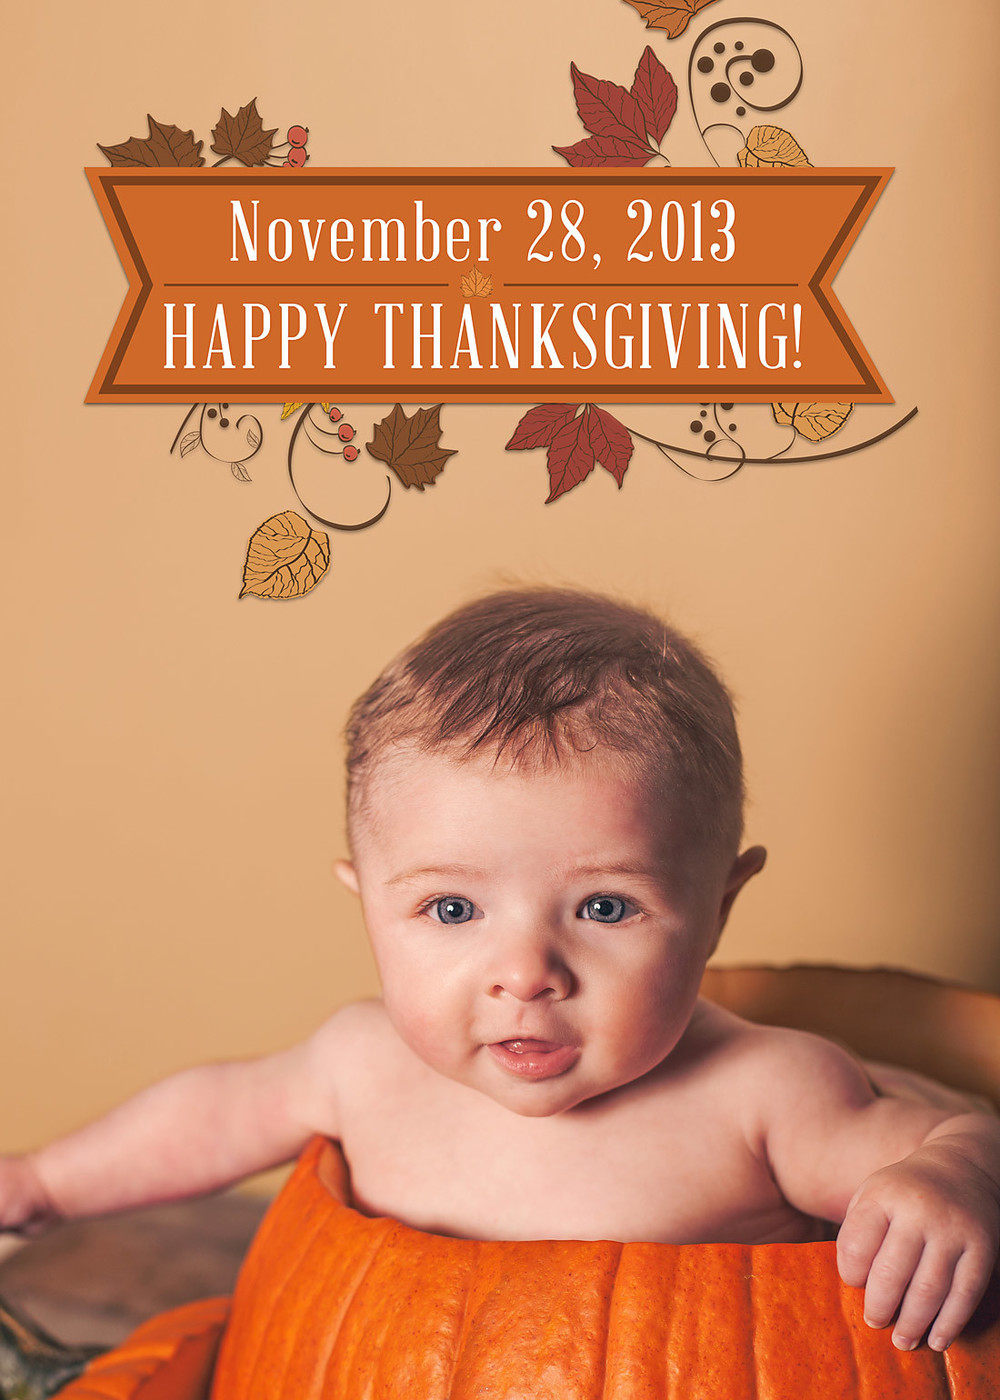 ThanksgivingAD-2013-BLOG.jpg